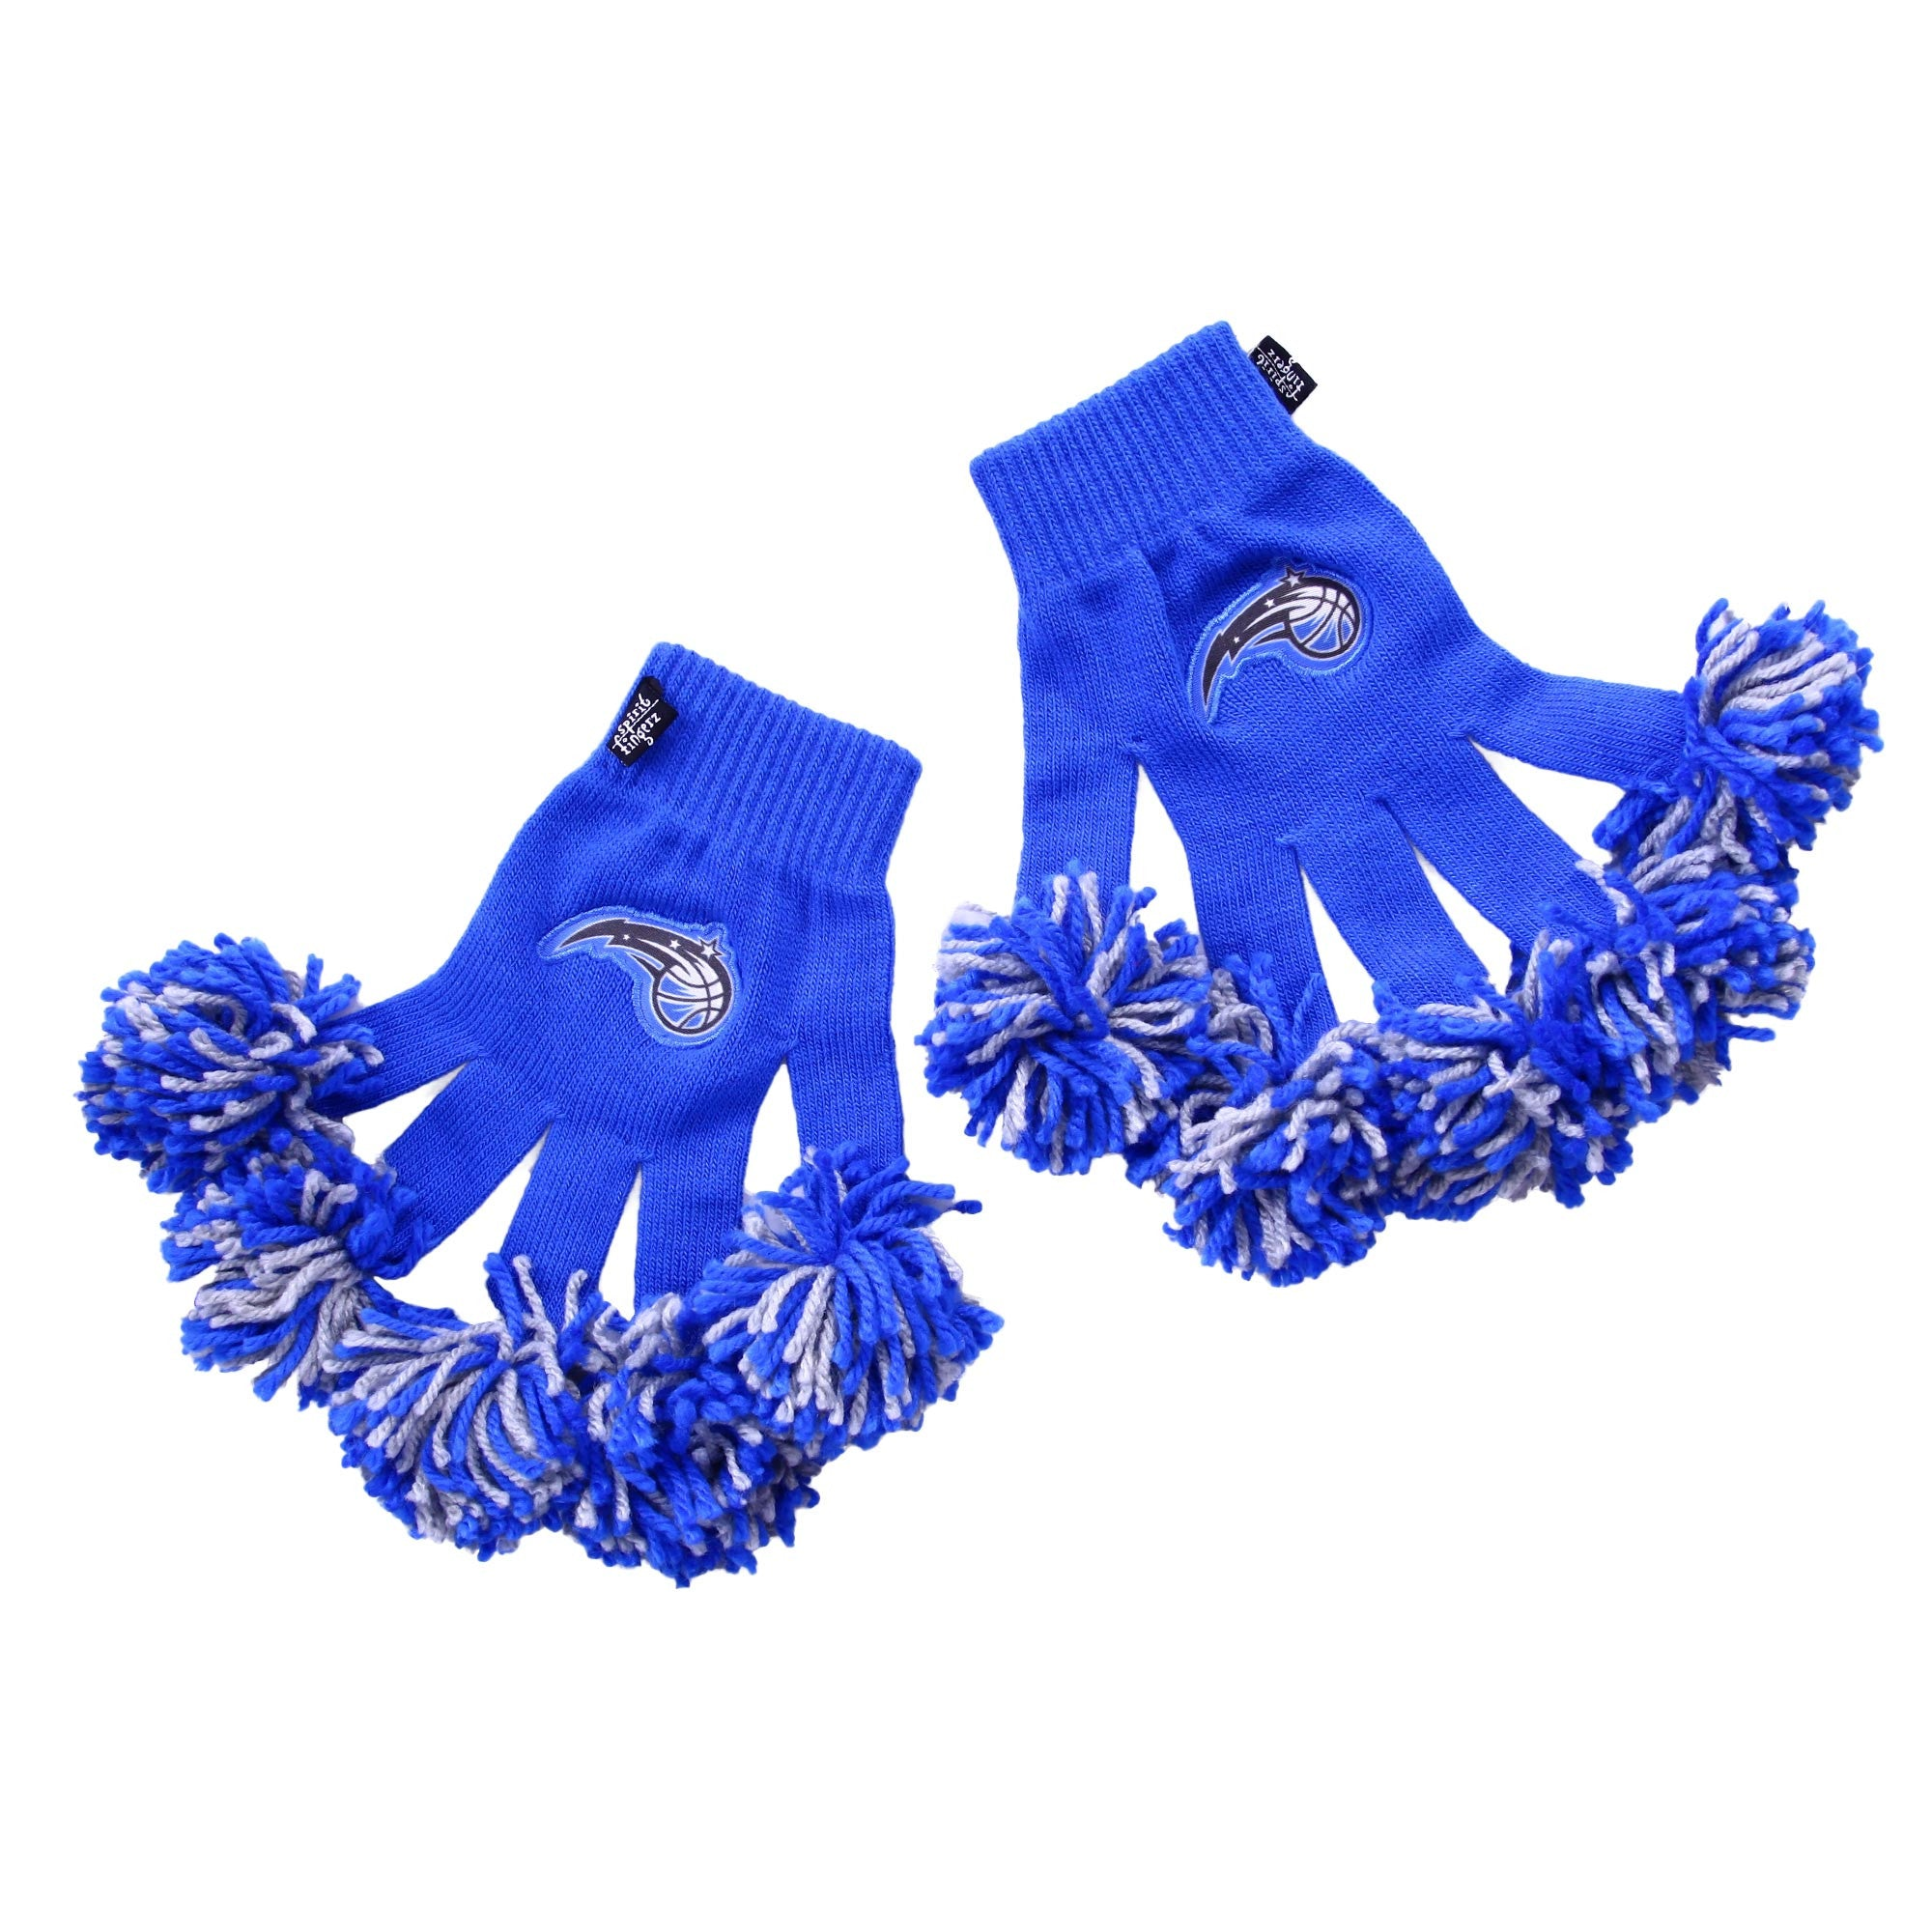 Orlando Magic NBA Spirit Fingerz Cheerleading Pom-Pom Gloves